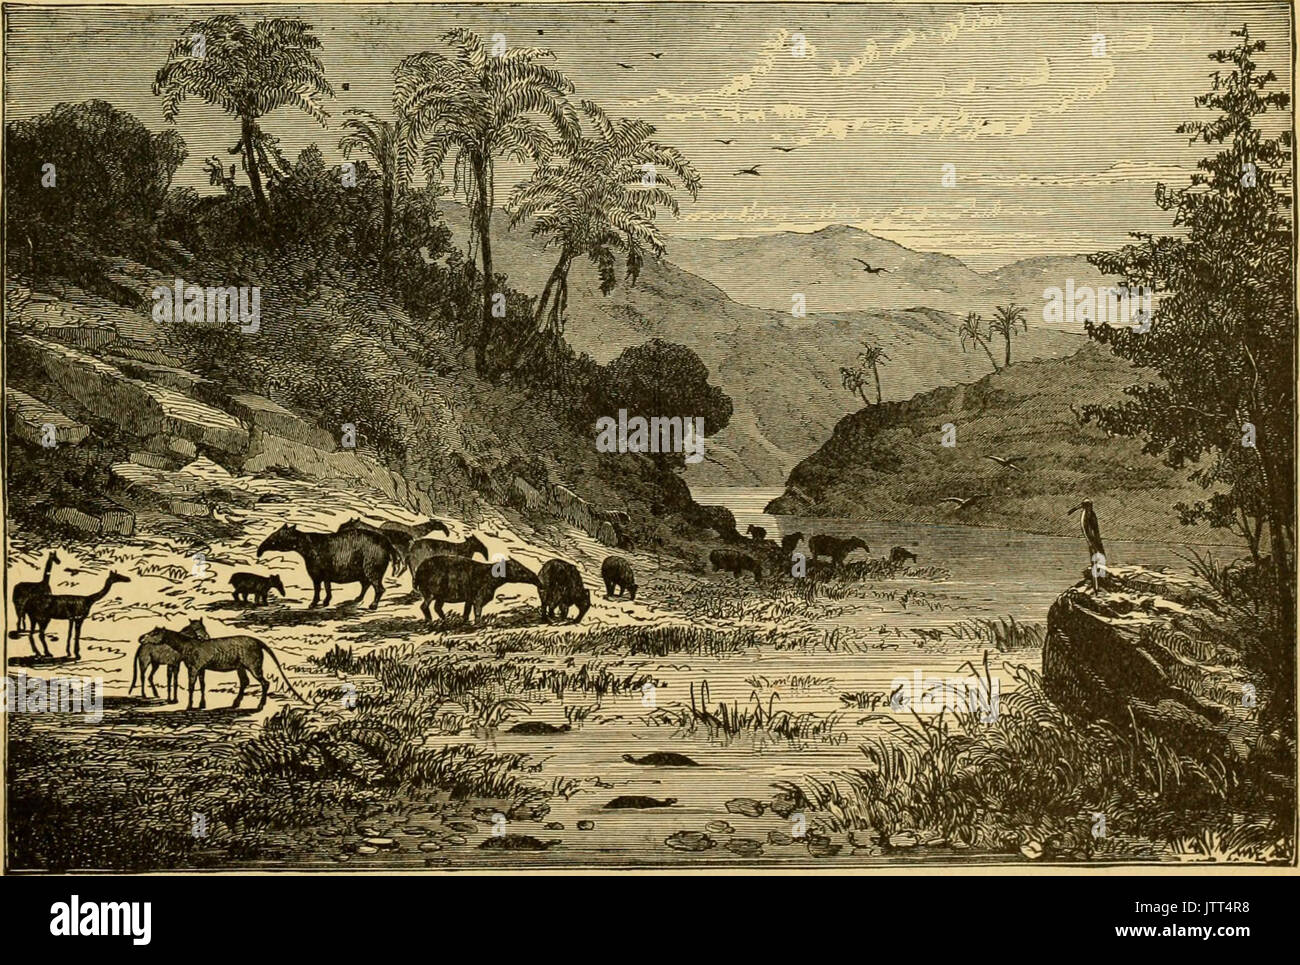 'Ridpath's history of the world; being an account of the ethnic origin, primitive estate, early migrations, social conditions and present promise of the principal families of men ..' (1897) - Stock Image